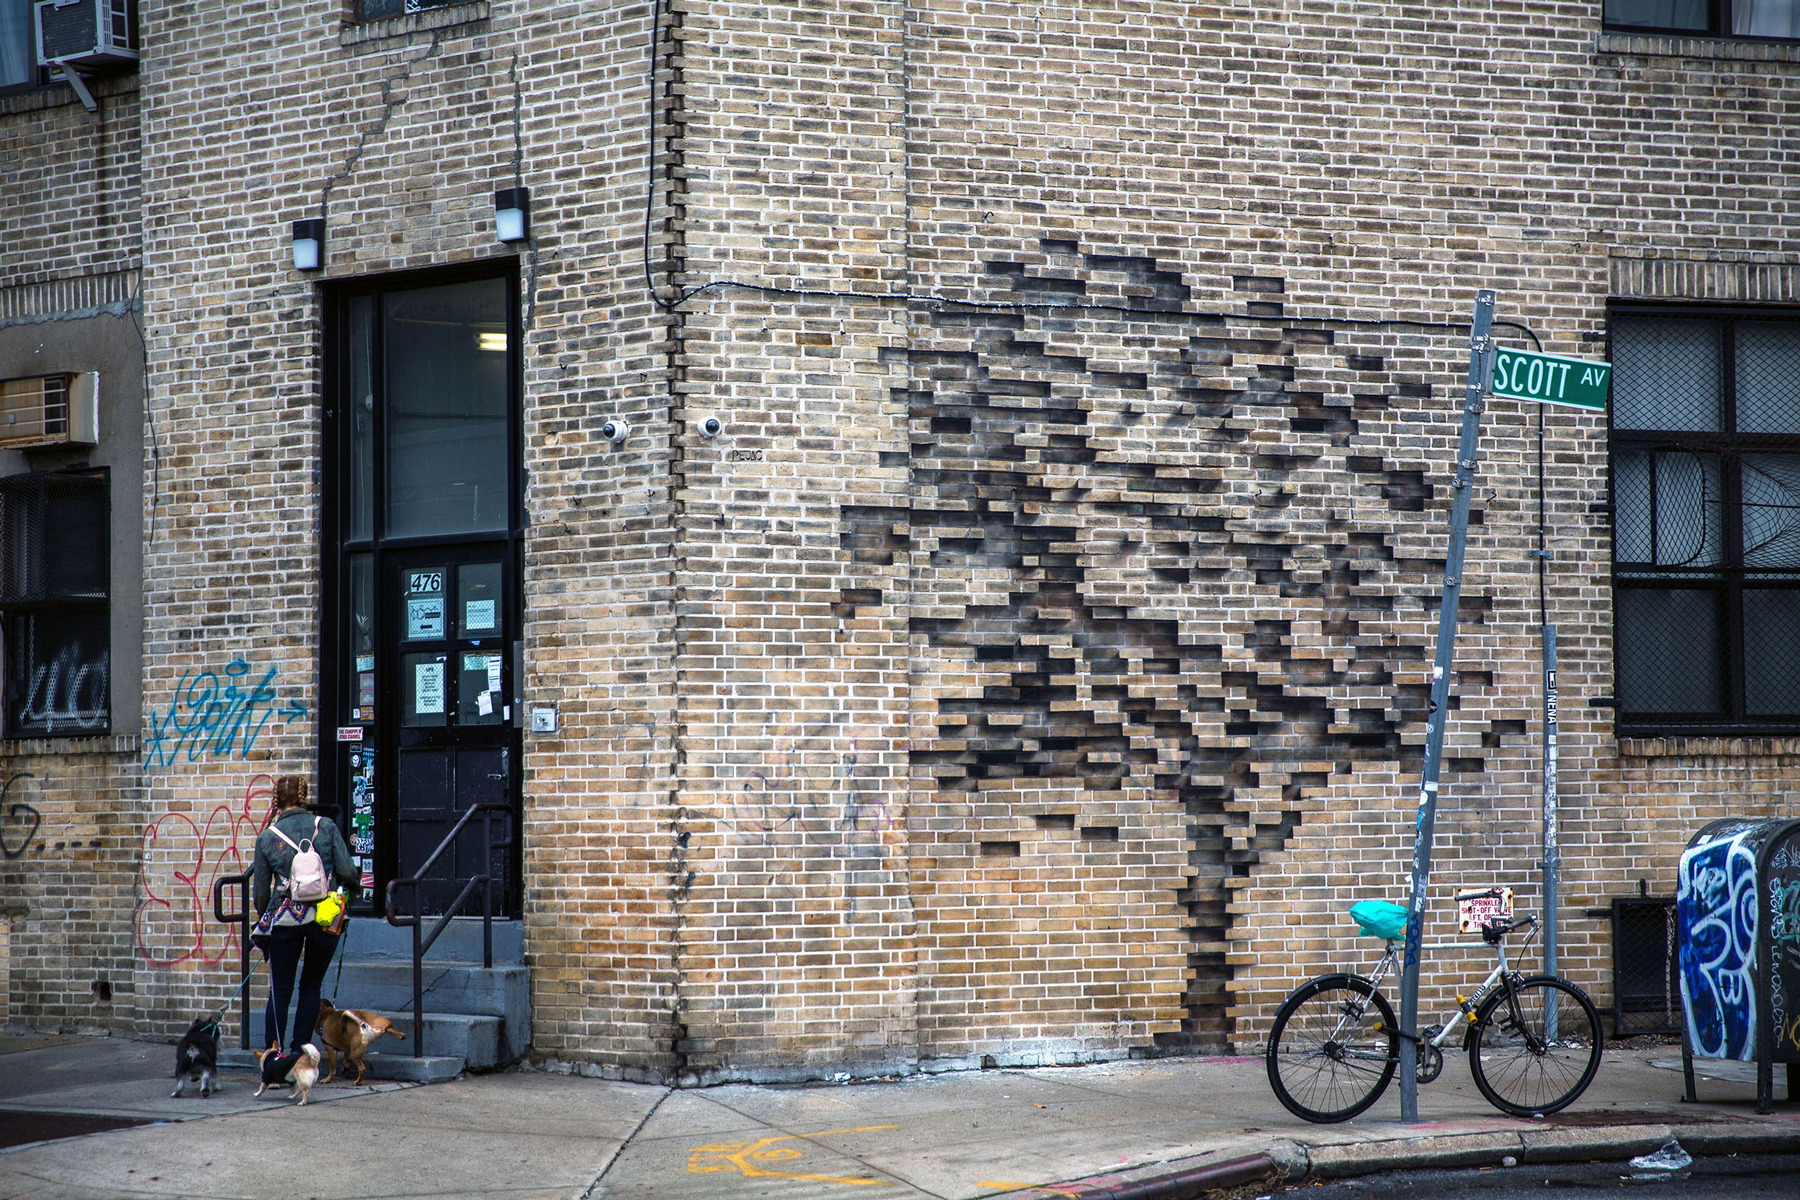 Illusion Wallpaper 3d Trees Grow From Bricks And A Storefront On The Streets Of